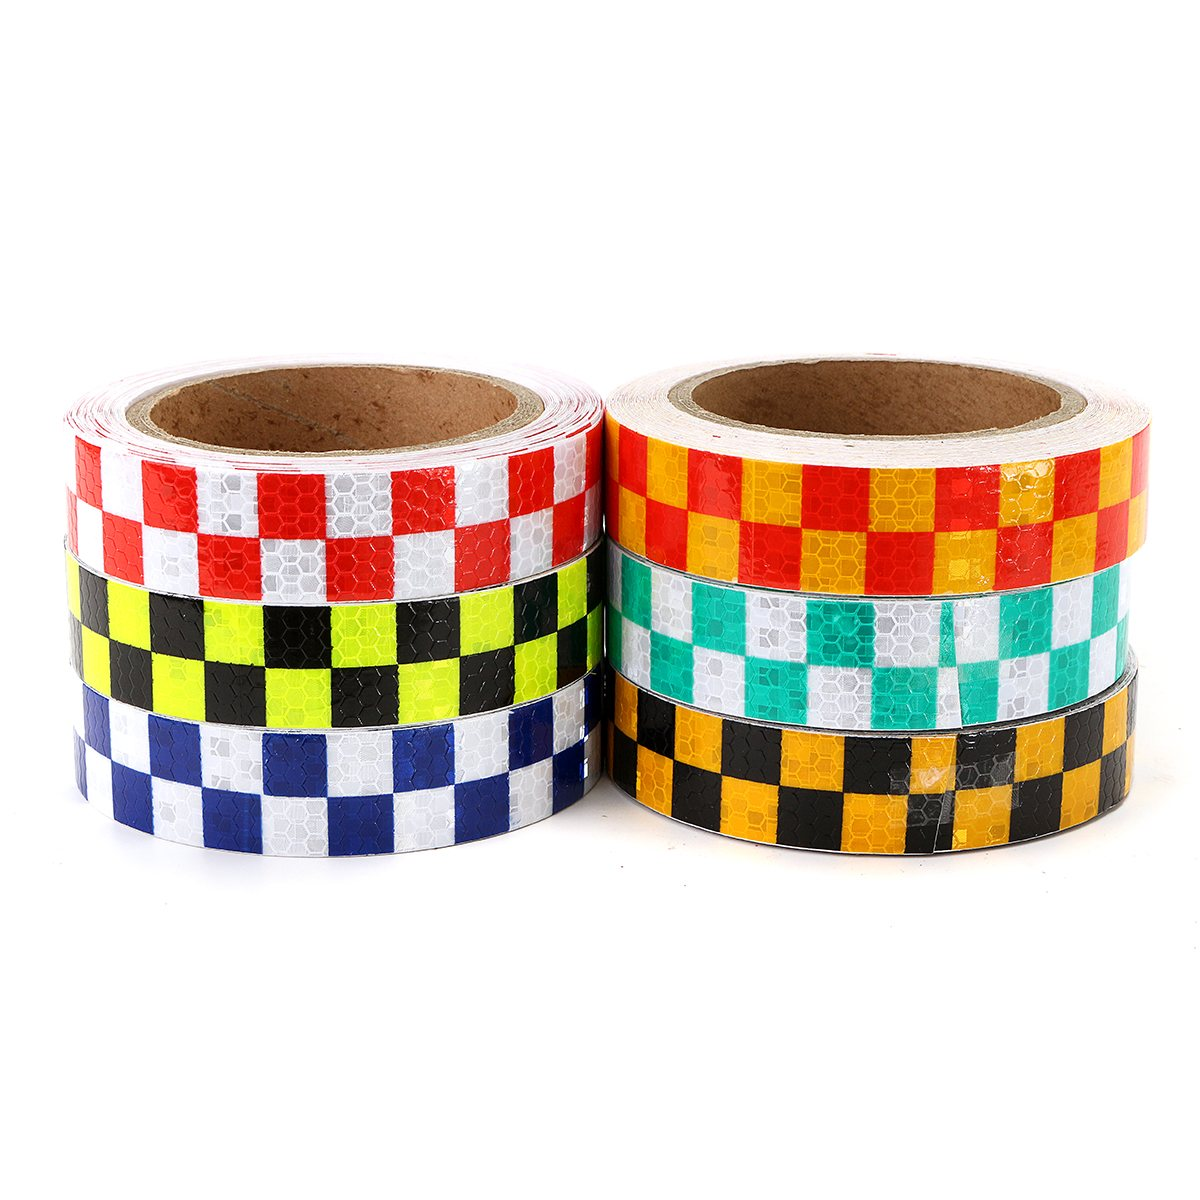 NEW Intensity Reflective Car Sticker Double Color Chequer Roll Signal PVC Workplace Safety Warning Tape цена